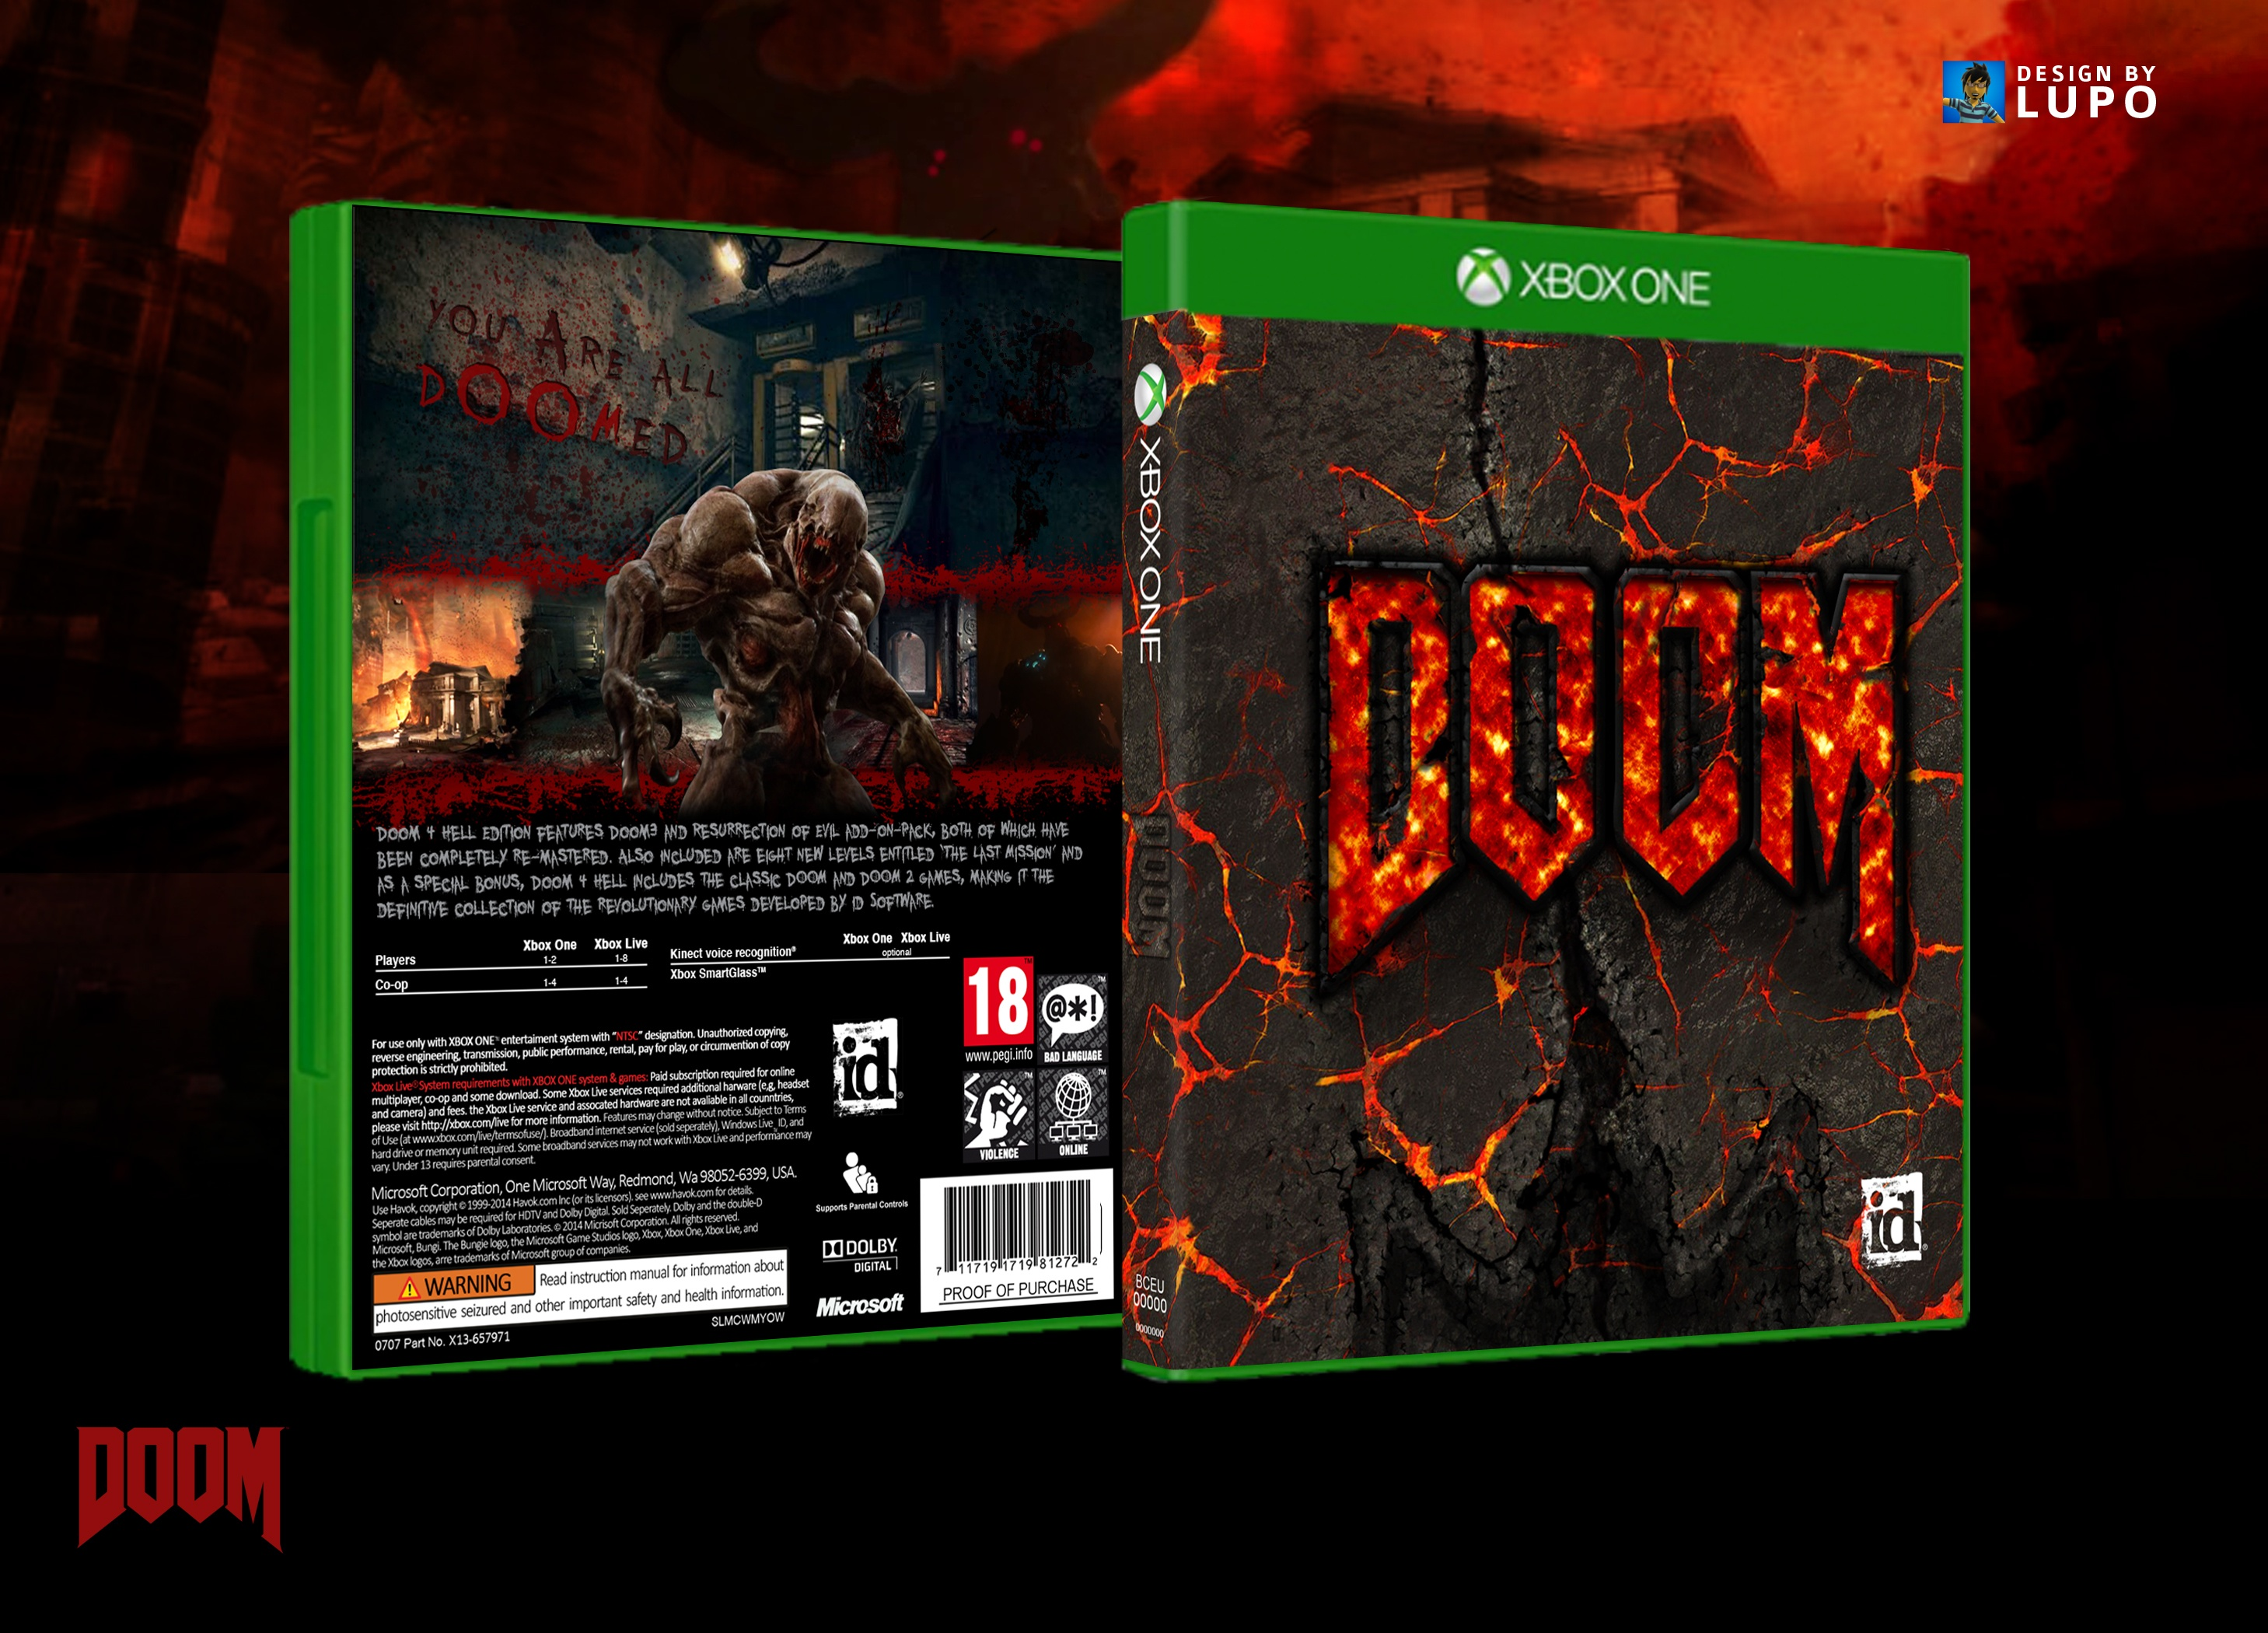 DOOM 4 box cover